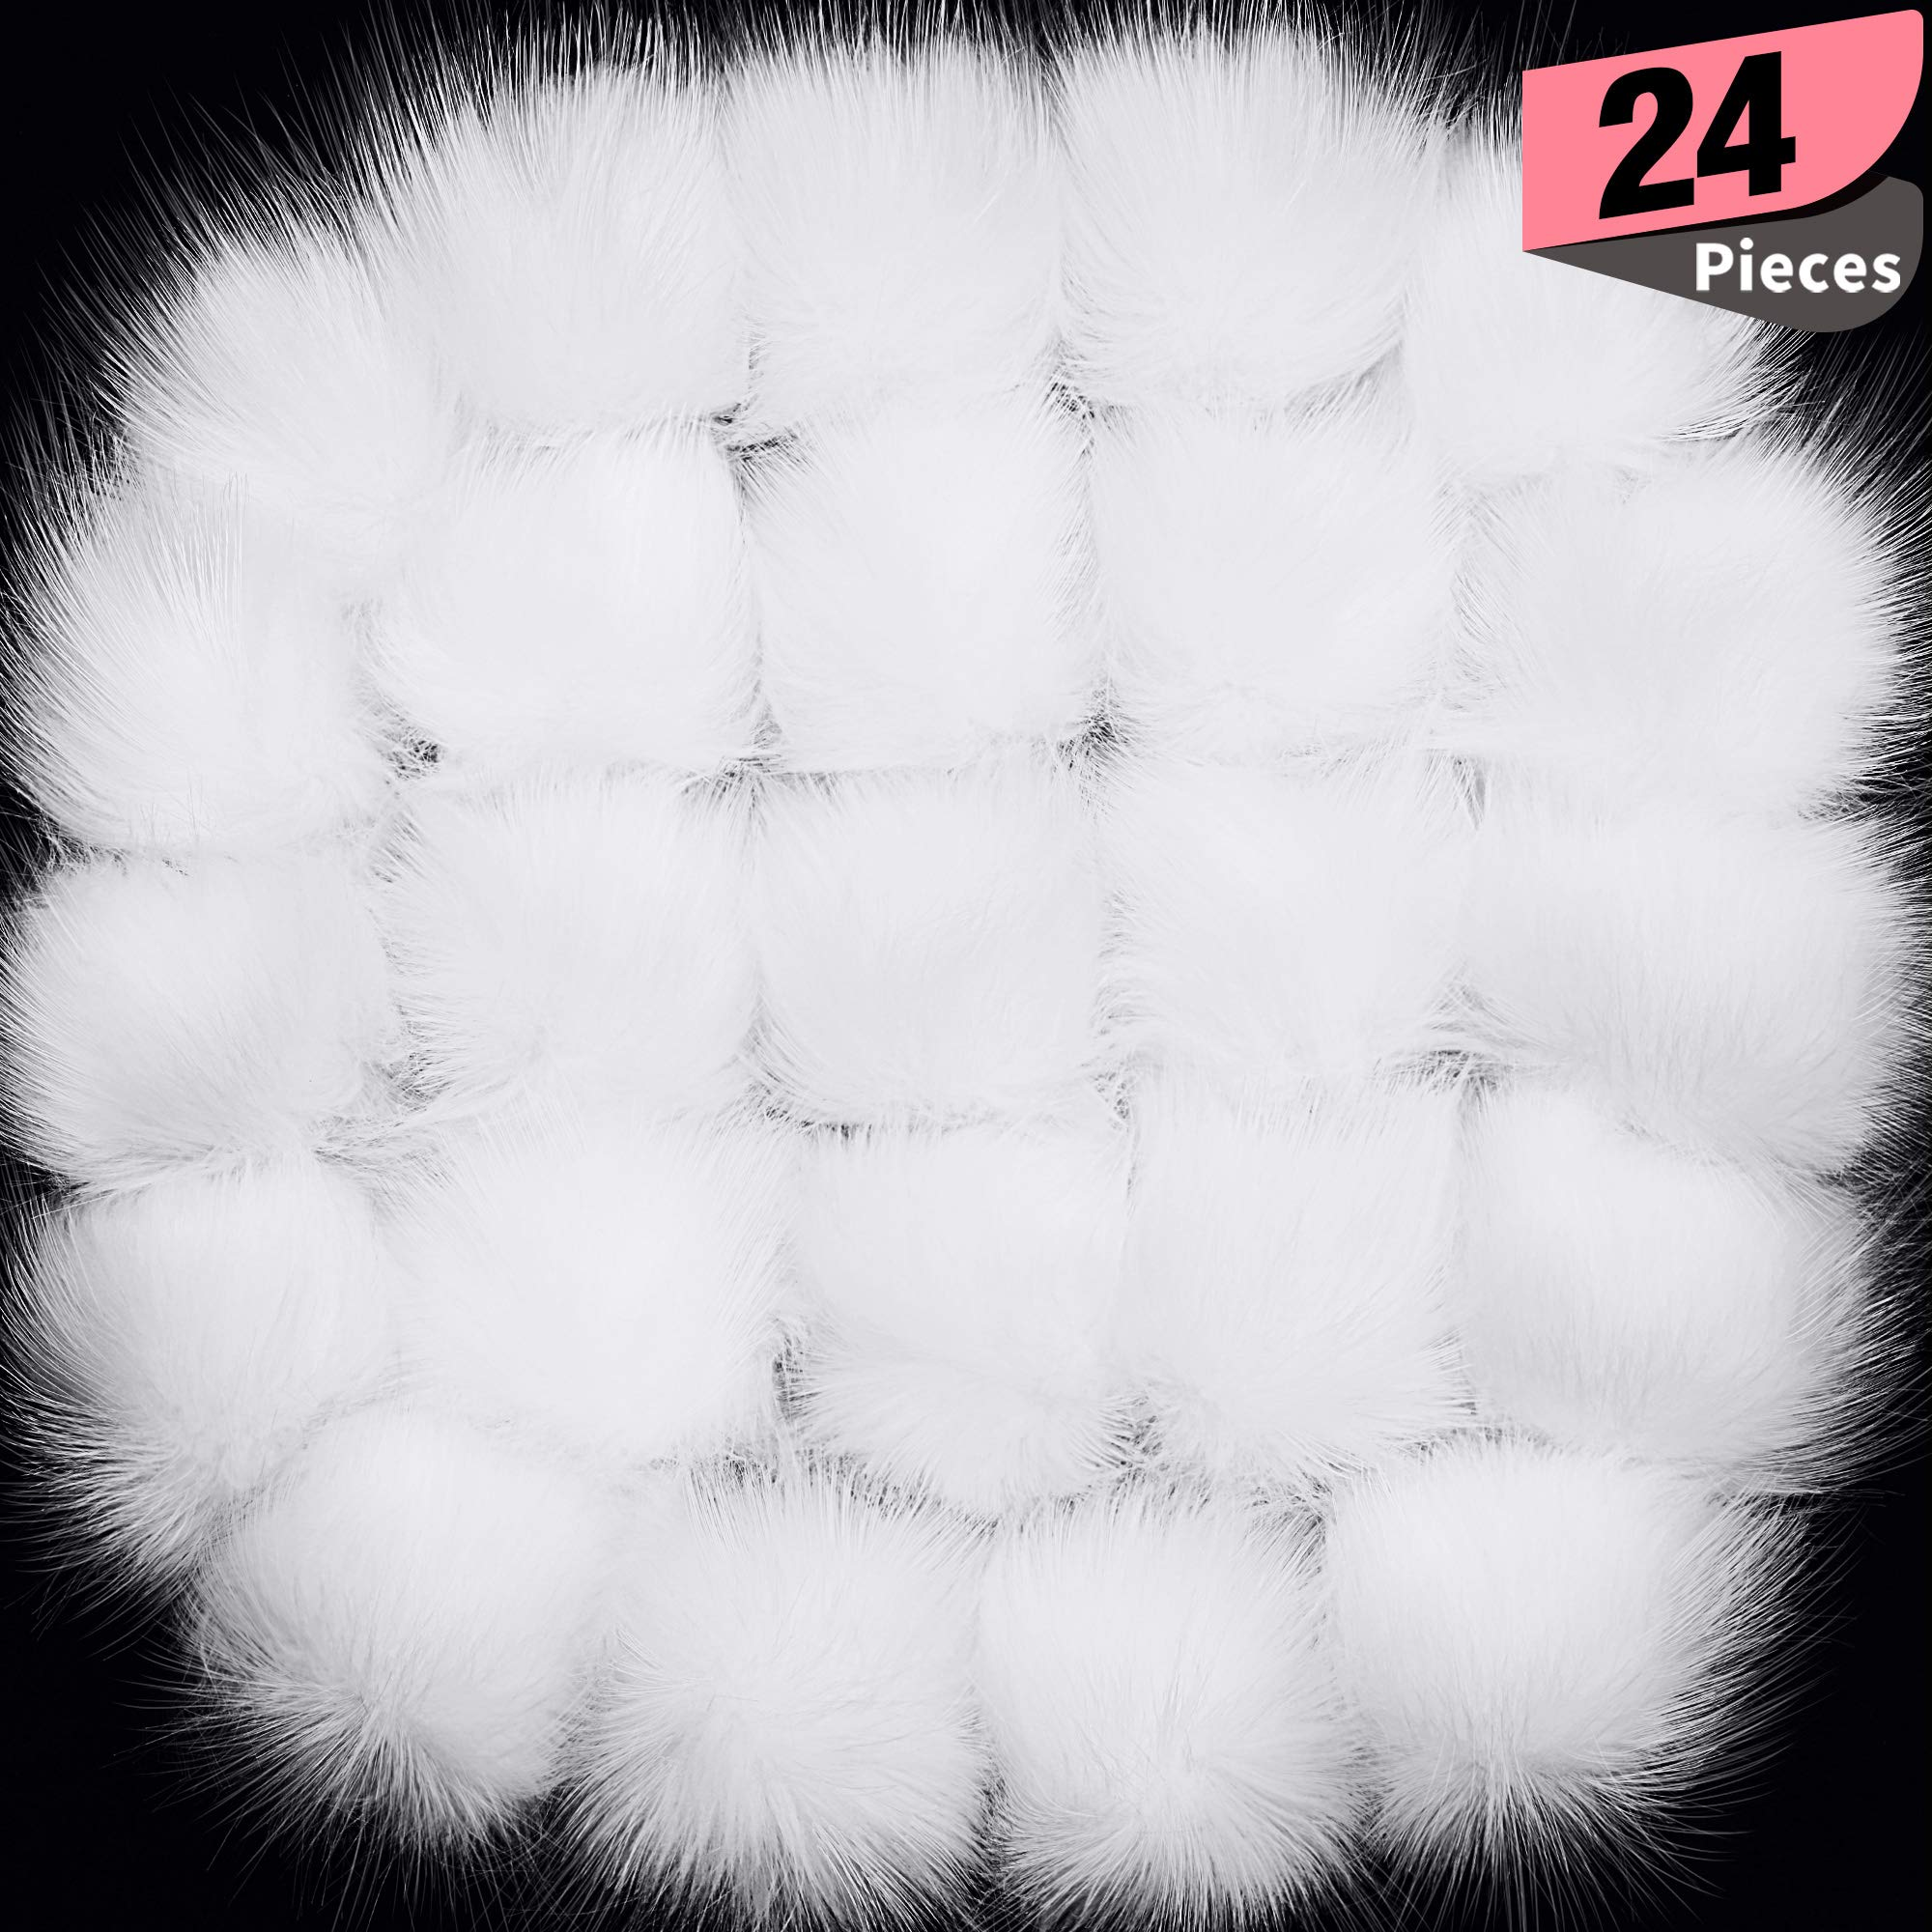 Willbond 36 Pieces Faux Fox Fur Pom Pom Balls with Rubber Band Fluffy Knitting Accessories for Hats Shoes Scarves Handbags Keychain Assorted Colors